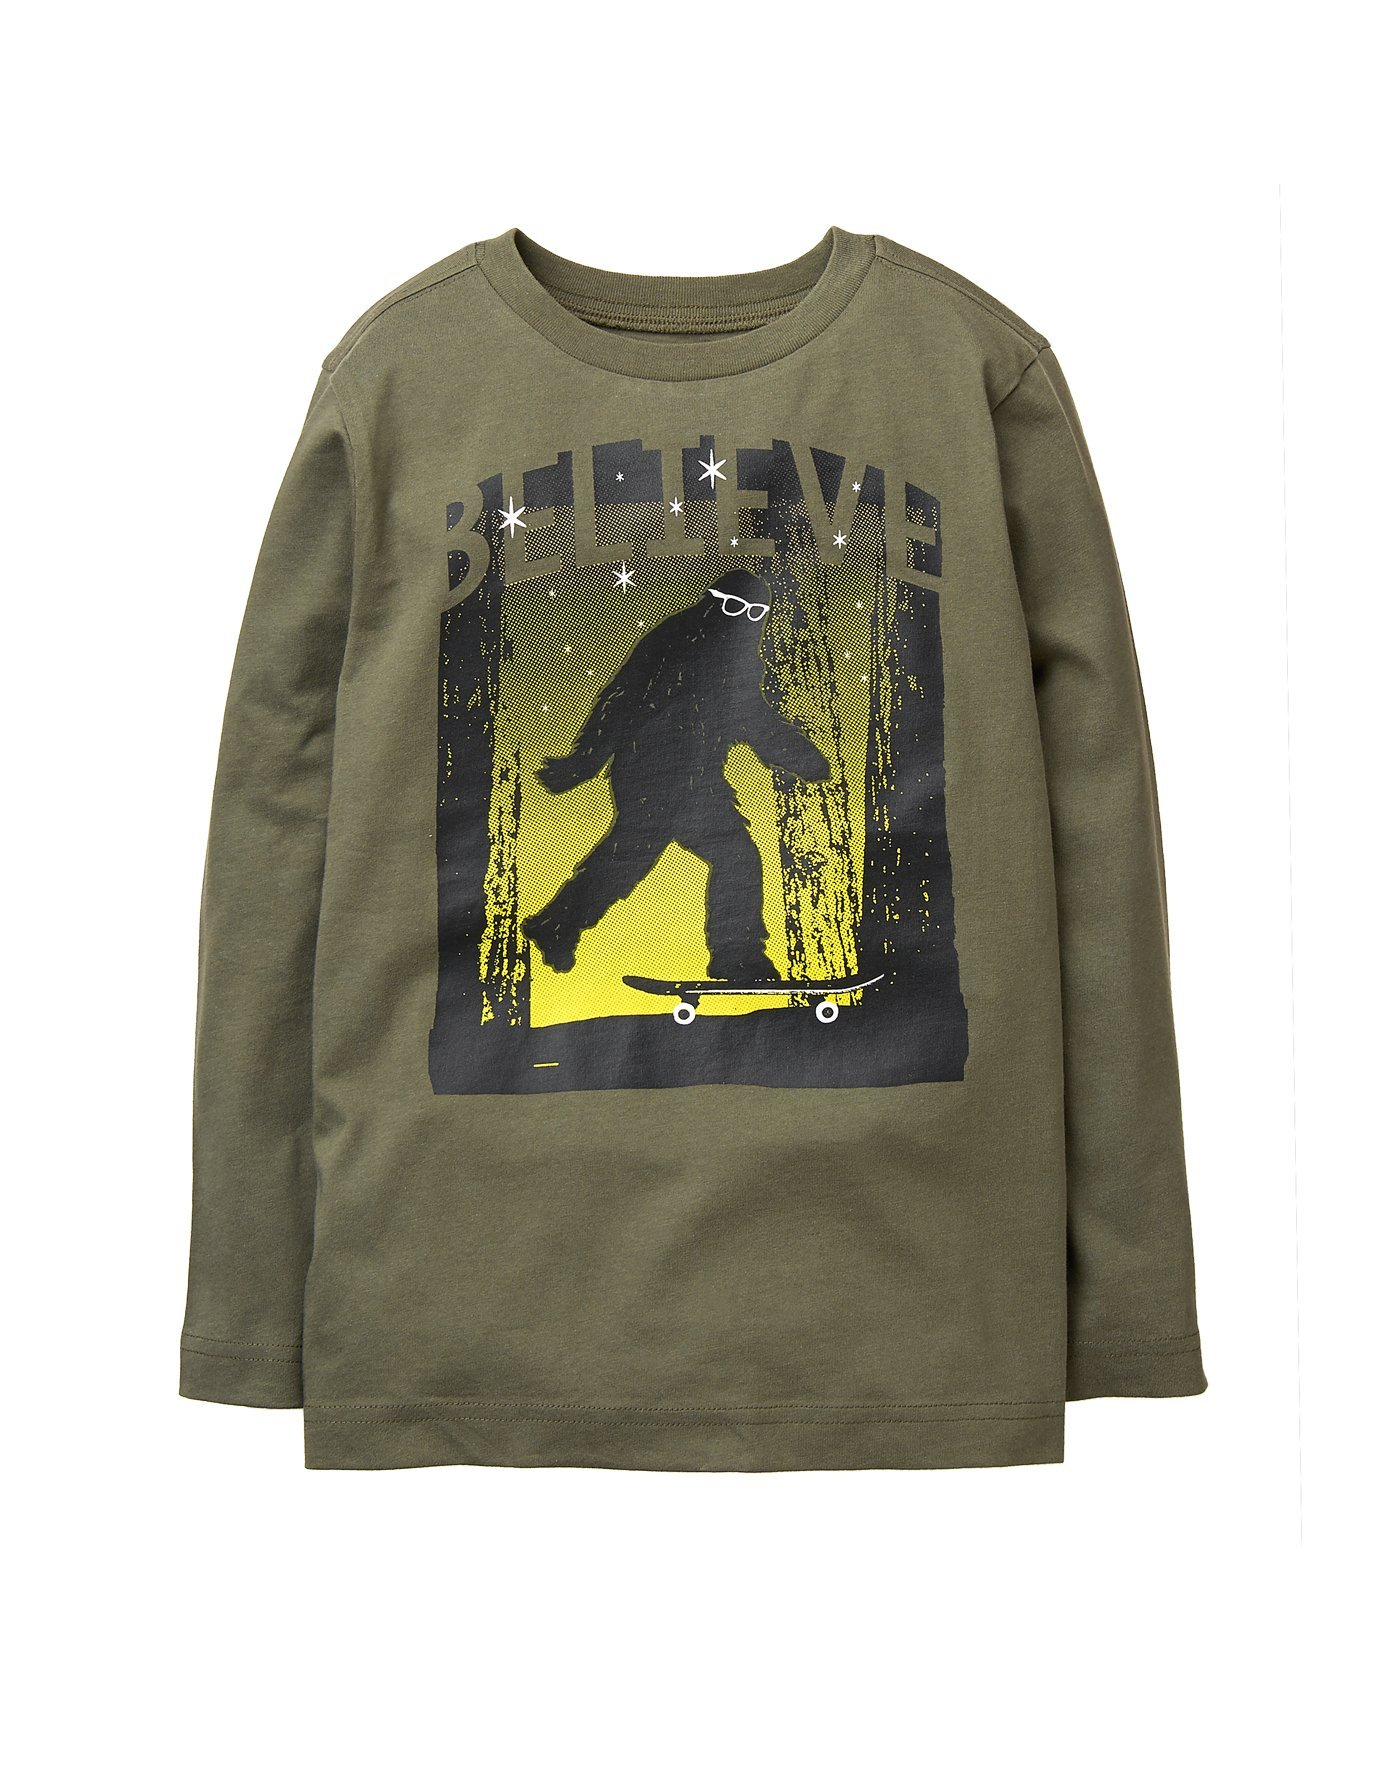 Crazy 8 Boys' Long-Sleeve Graphic Tee, Beetle, L